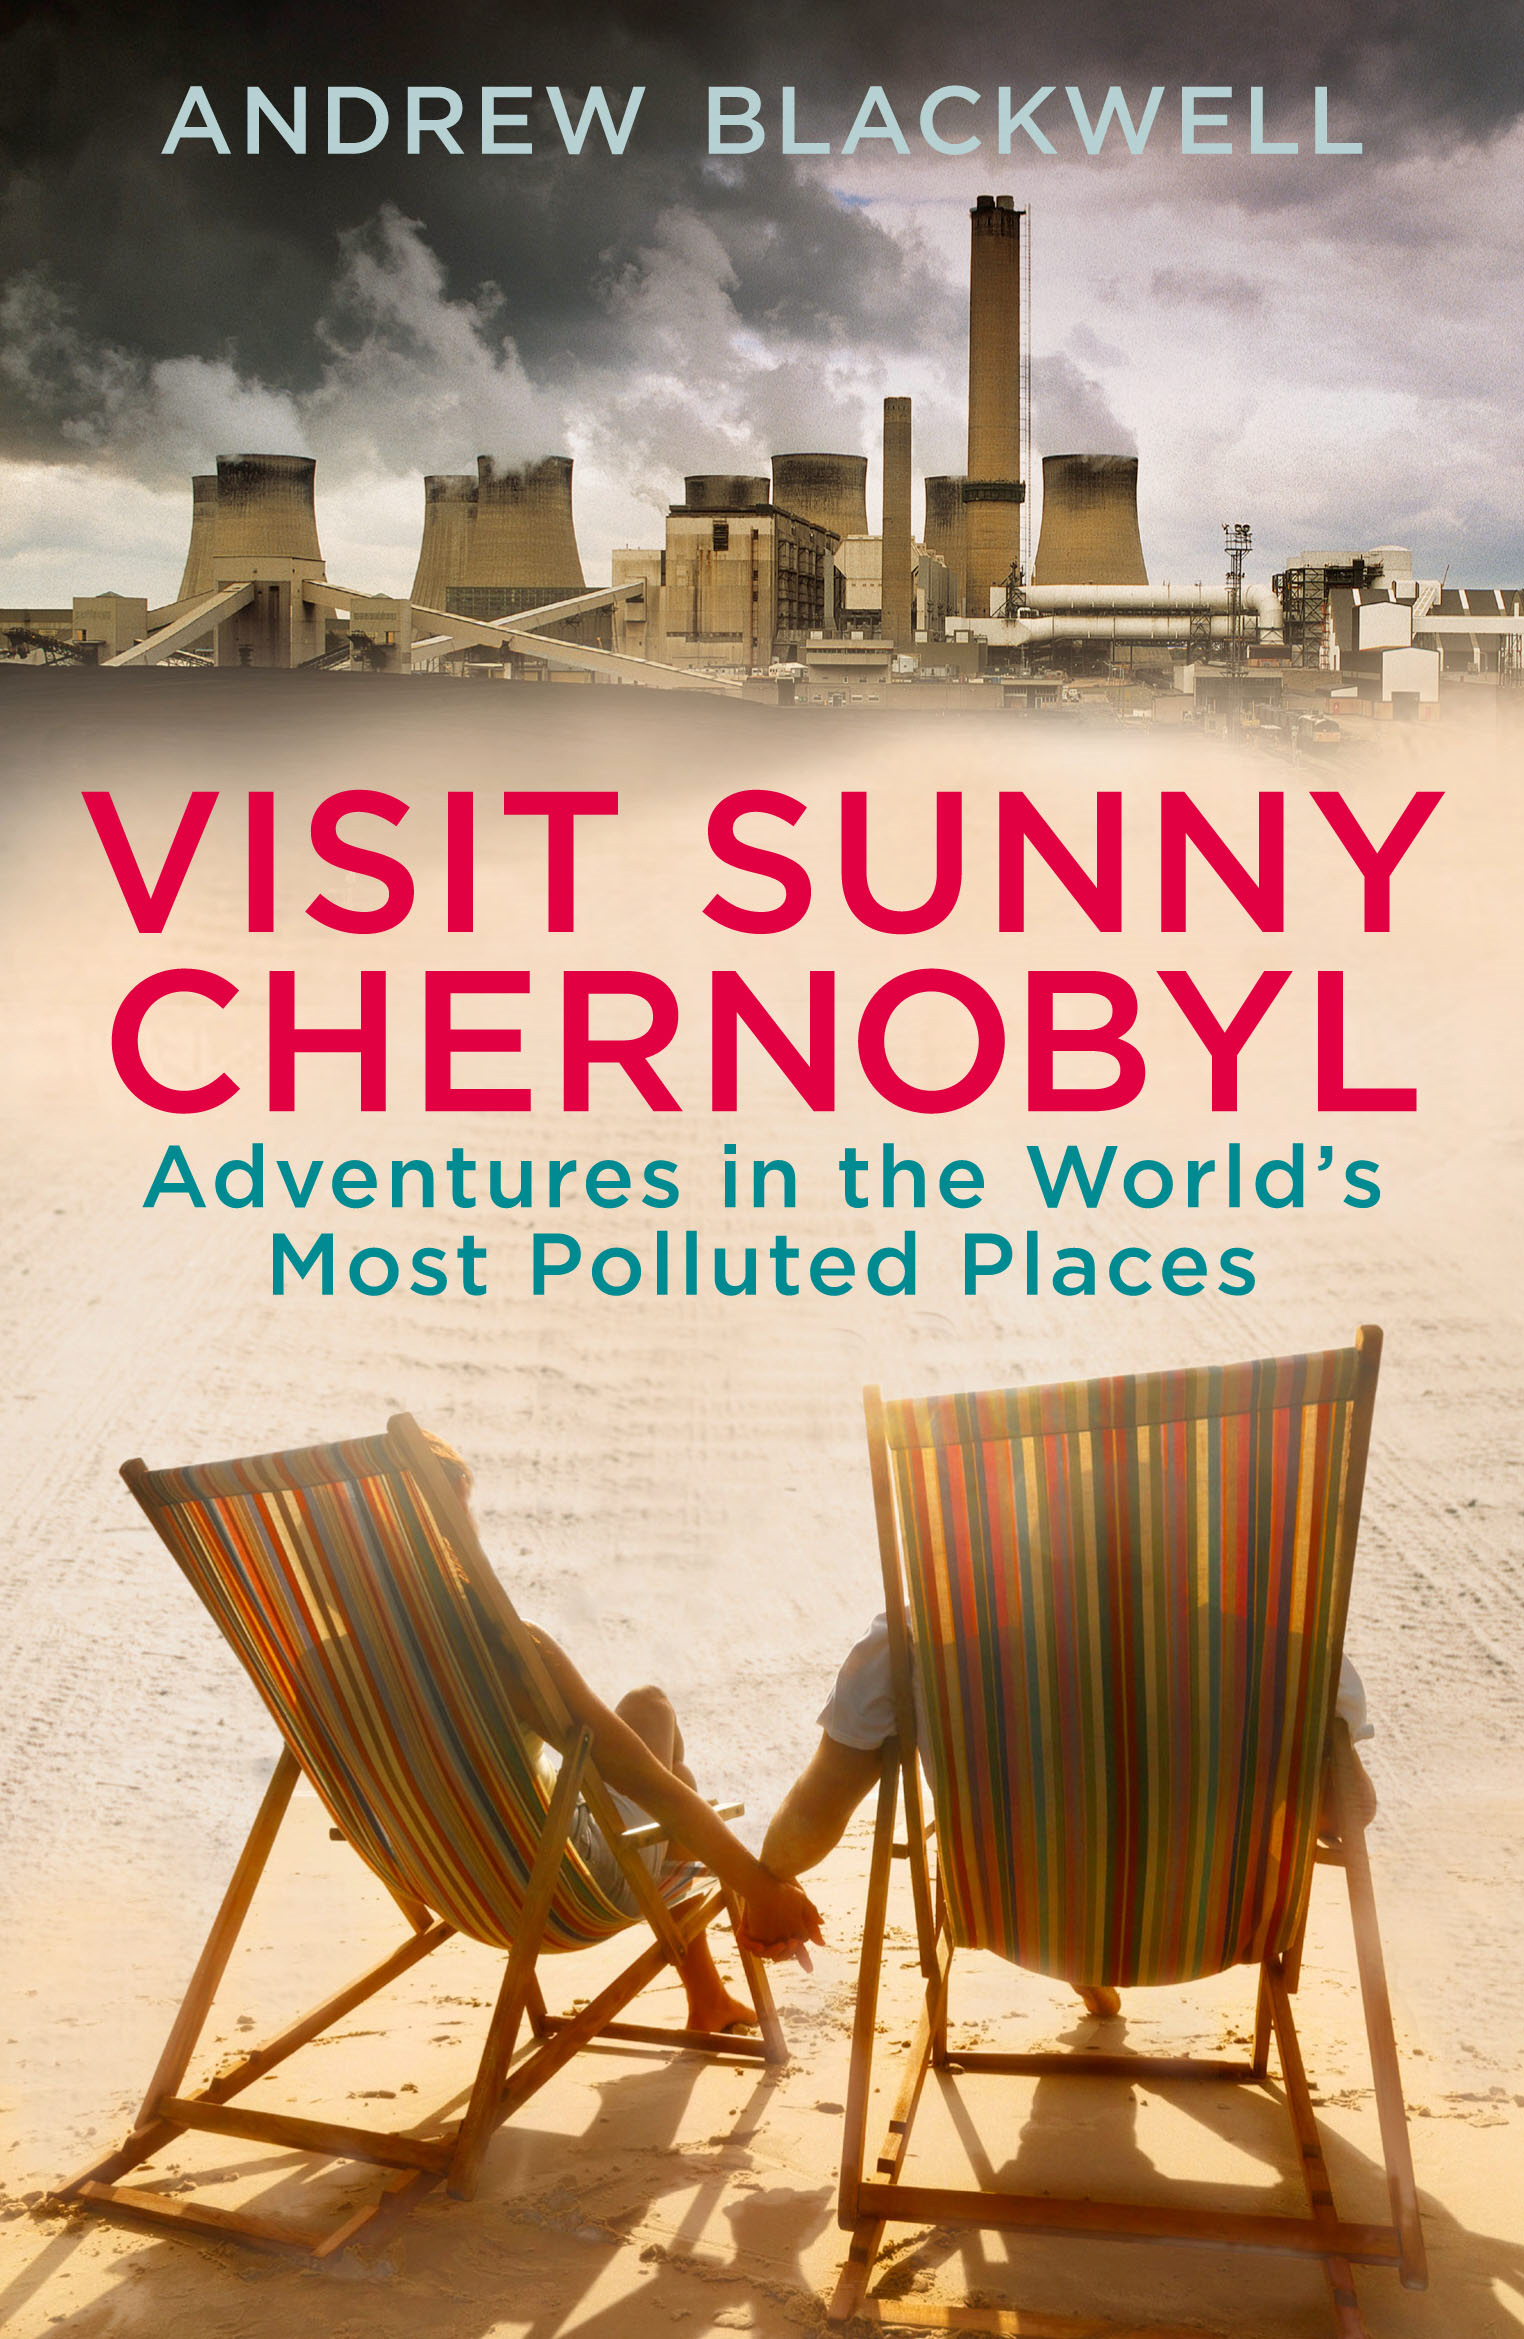 Visit Sunny Chernobyl Adventures in the World?s Most Polluted Places